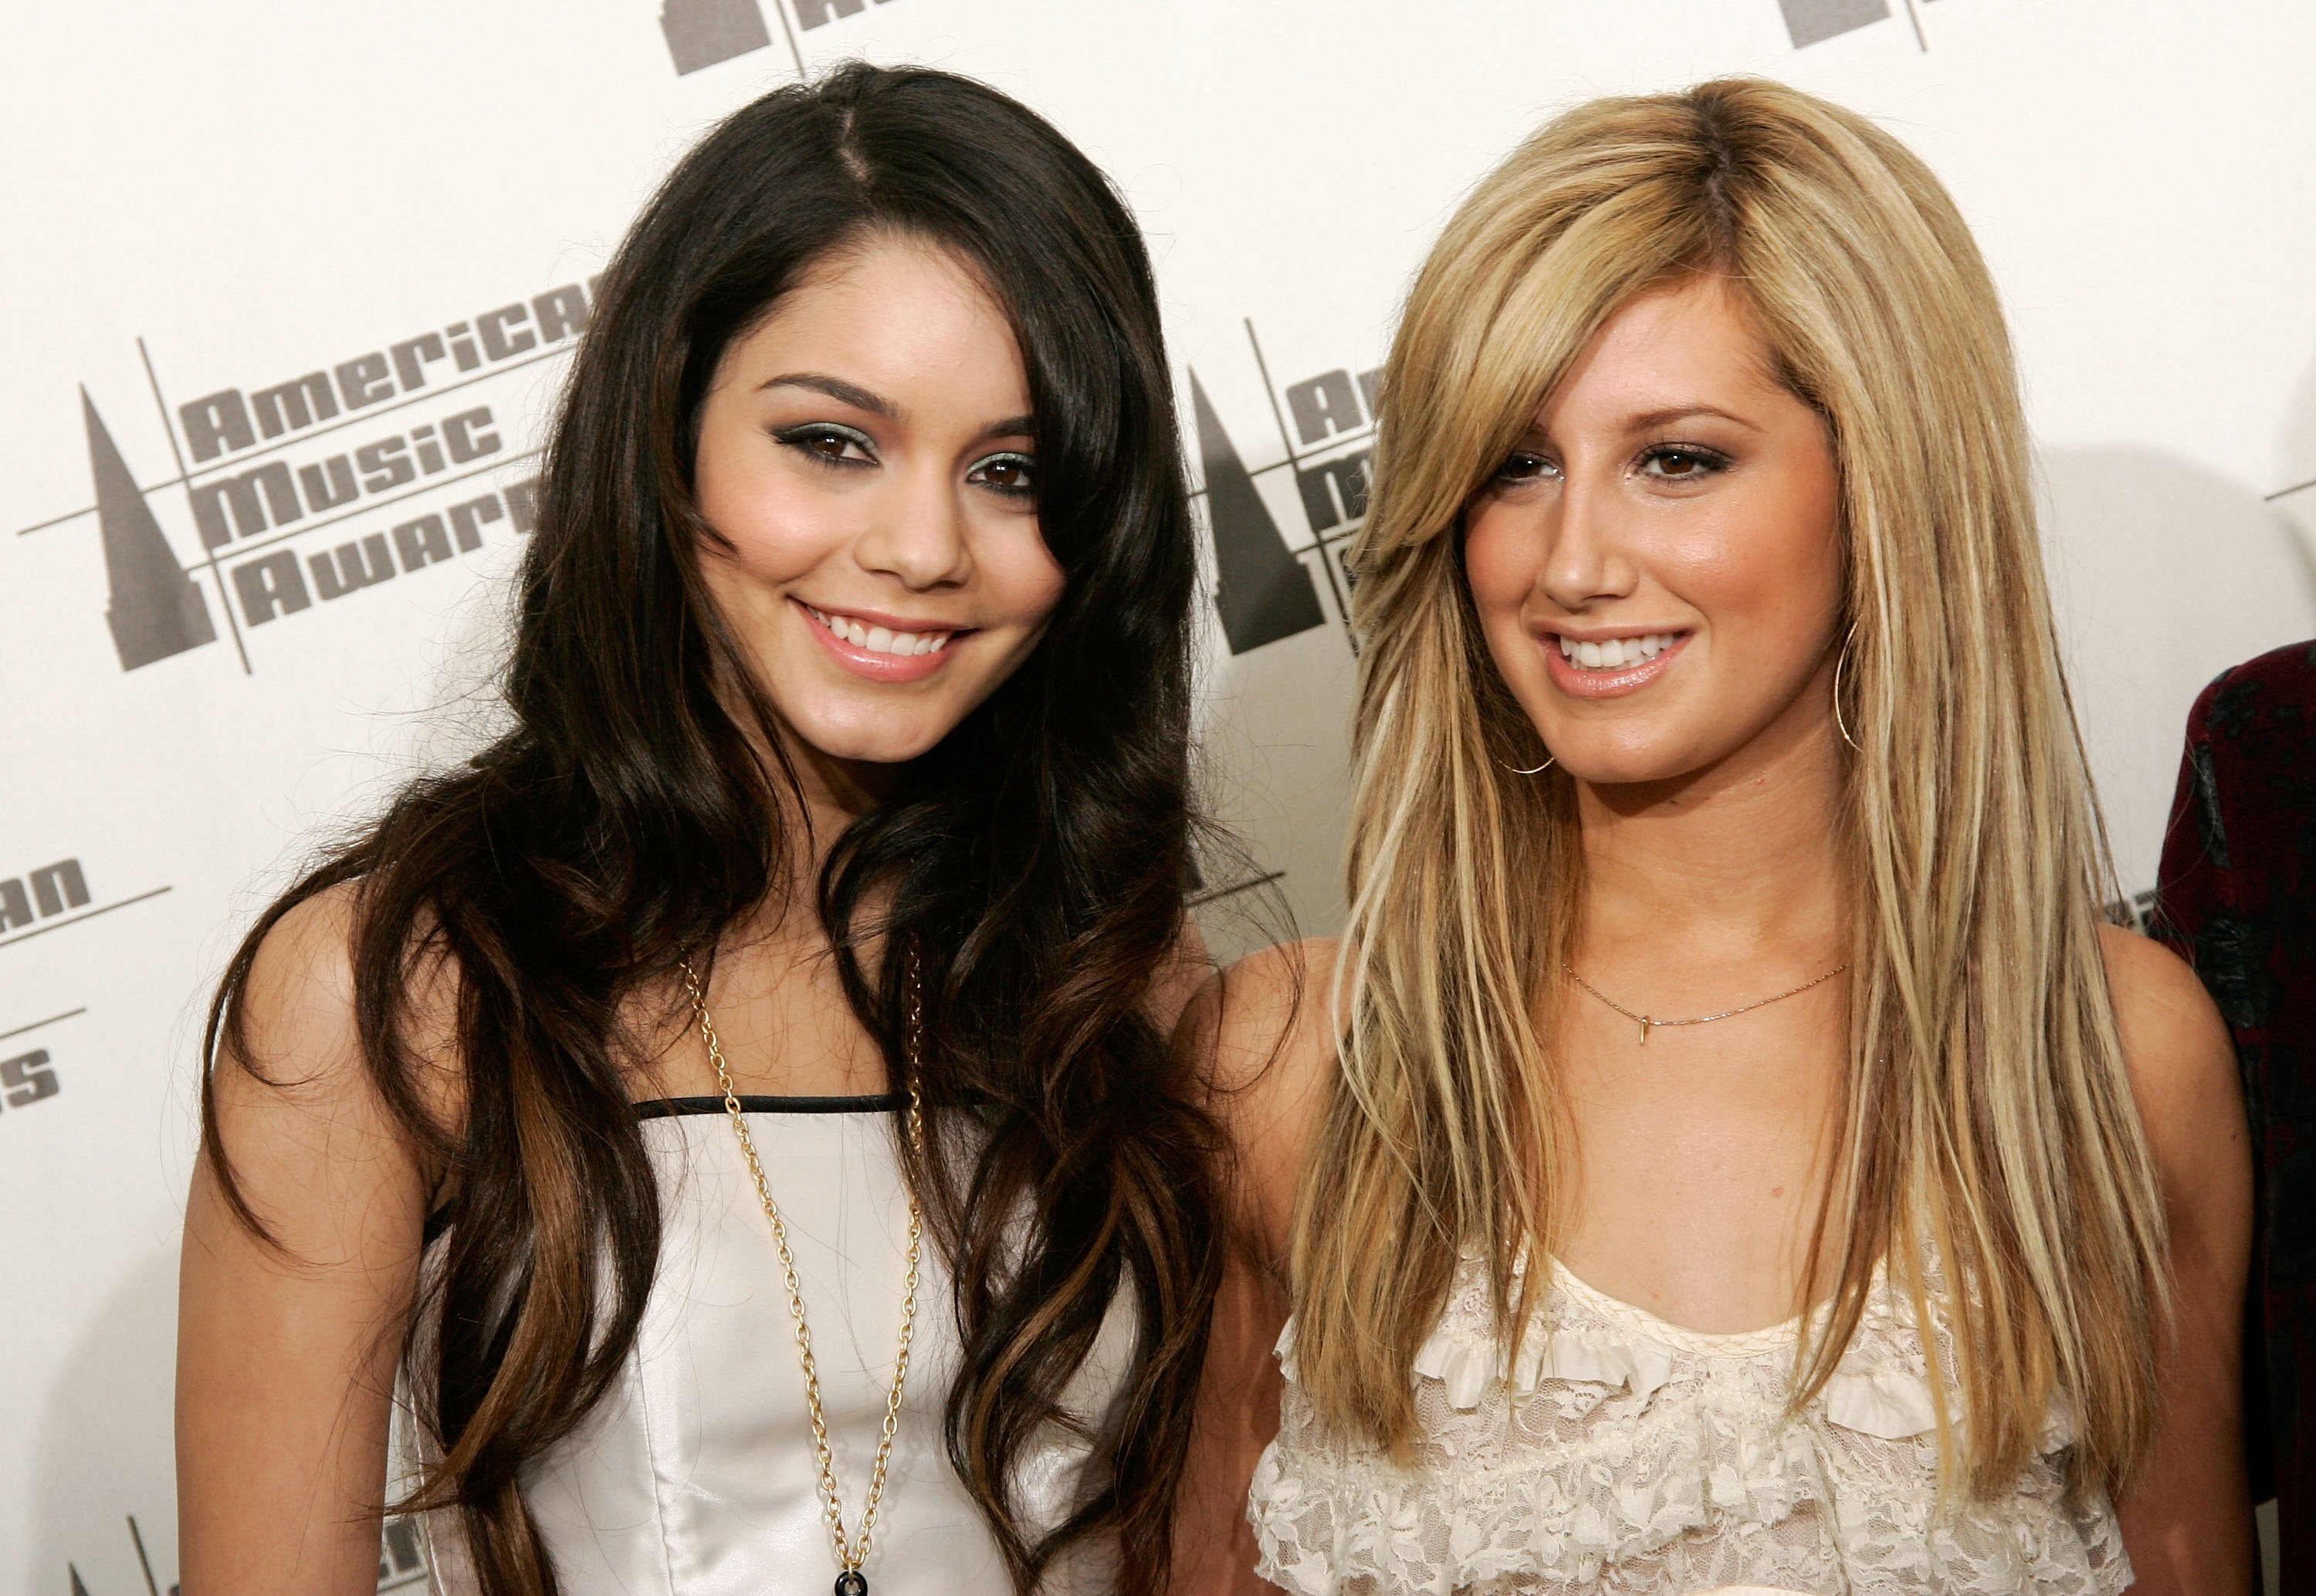 How much is vanessa hudgens worth